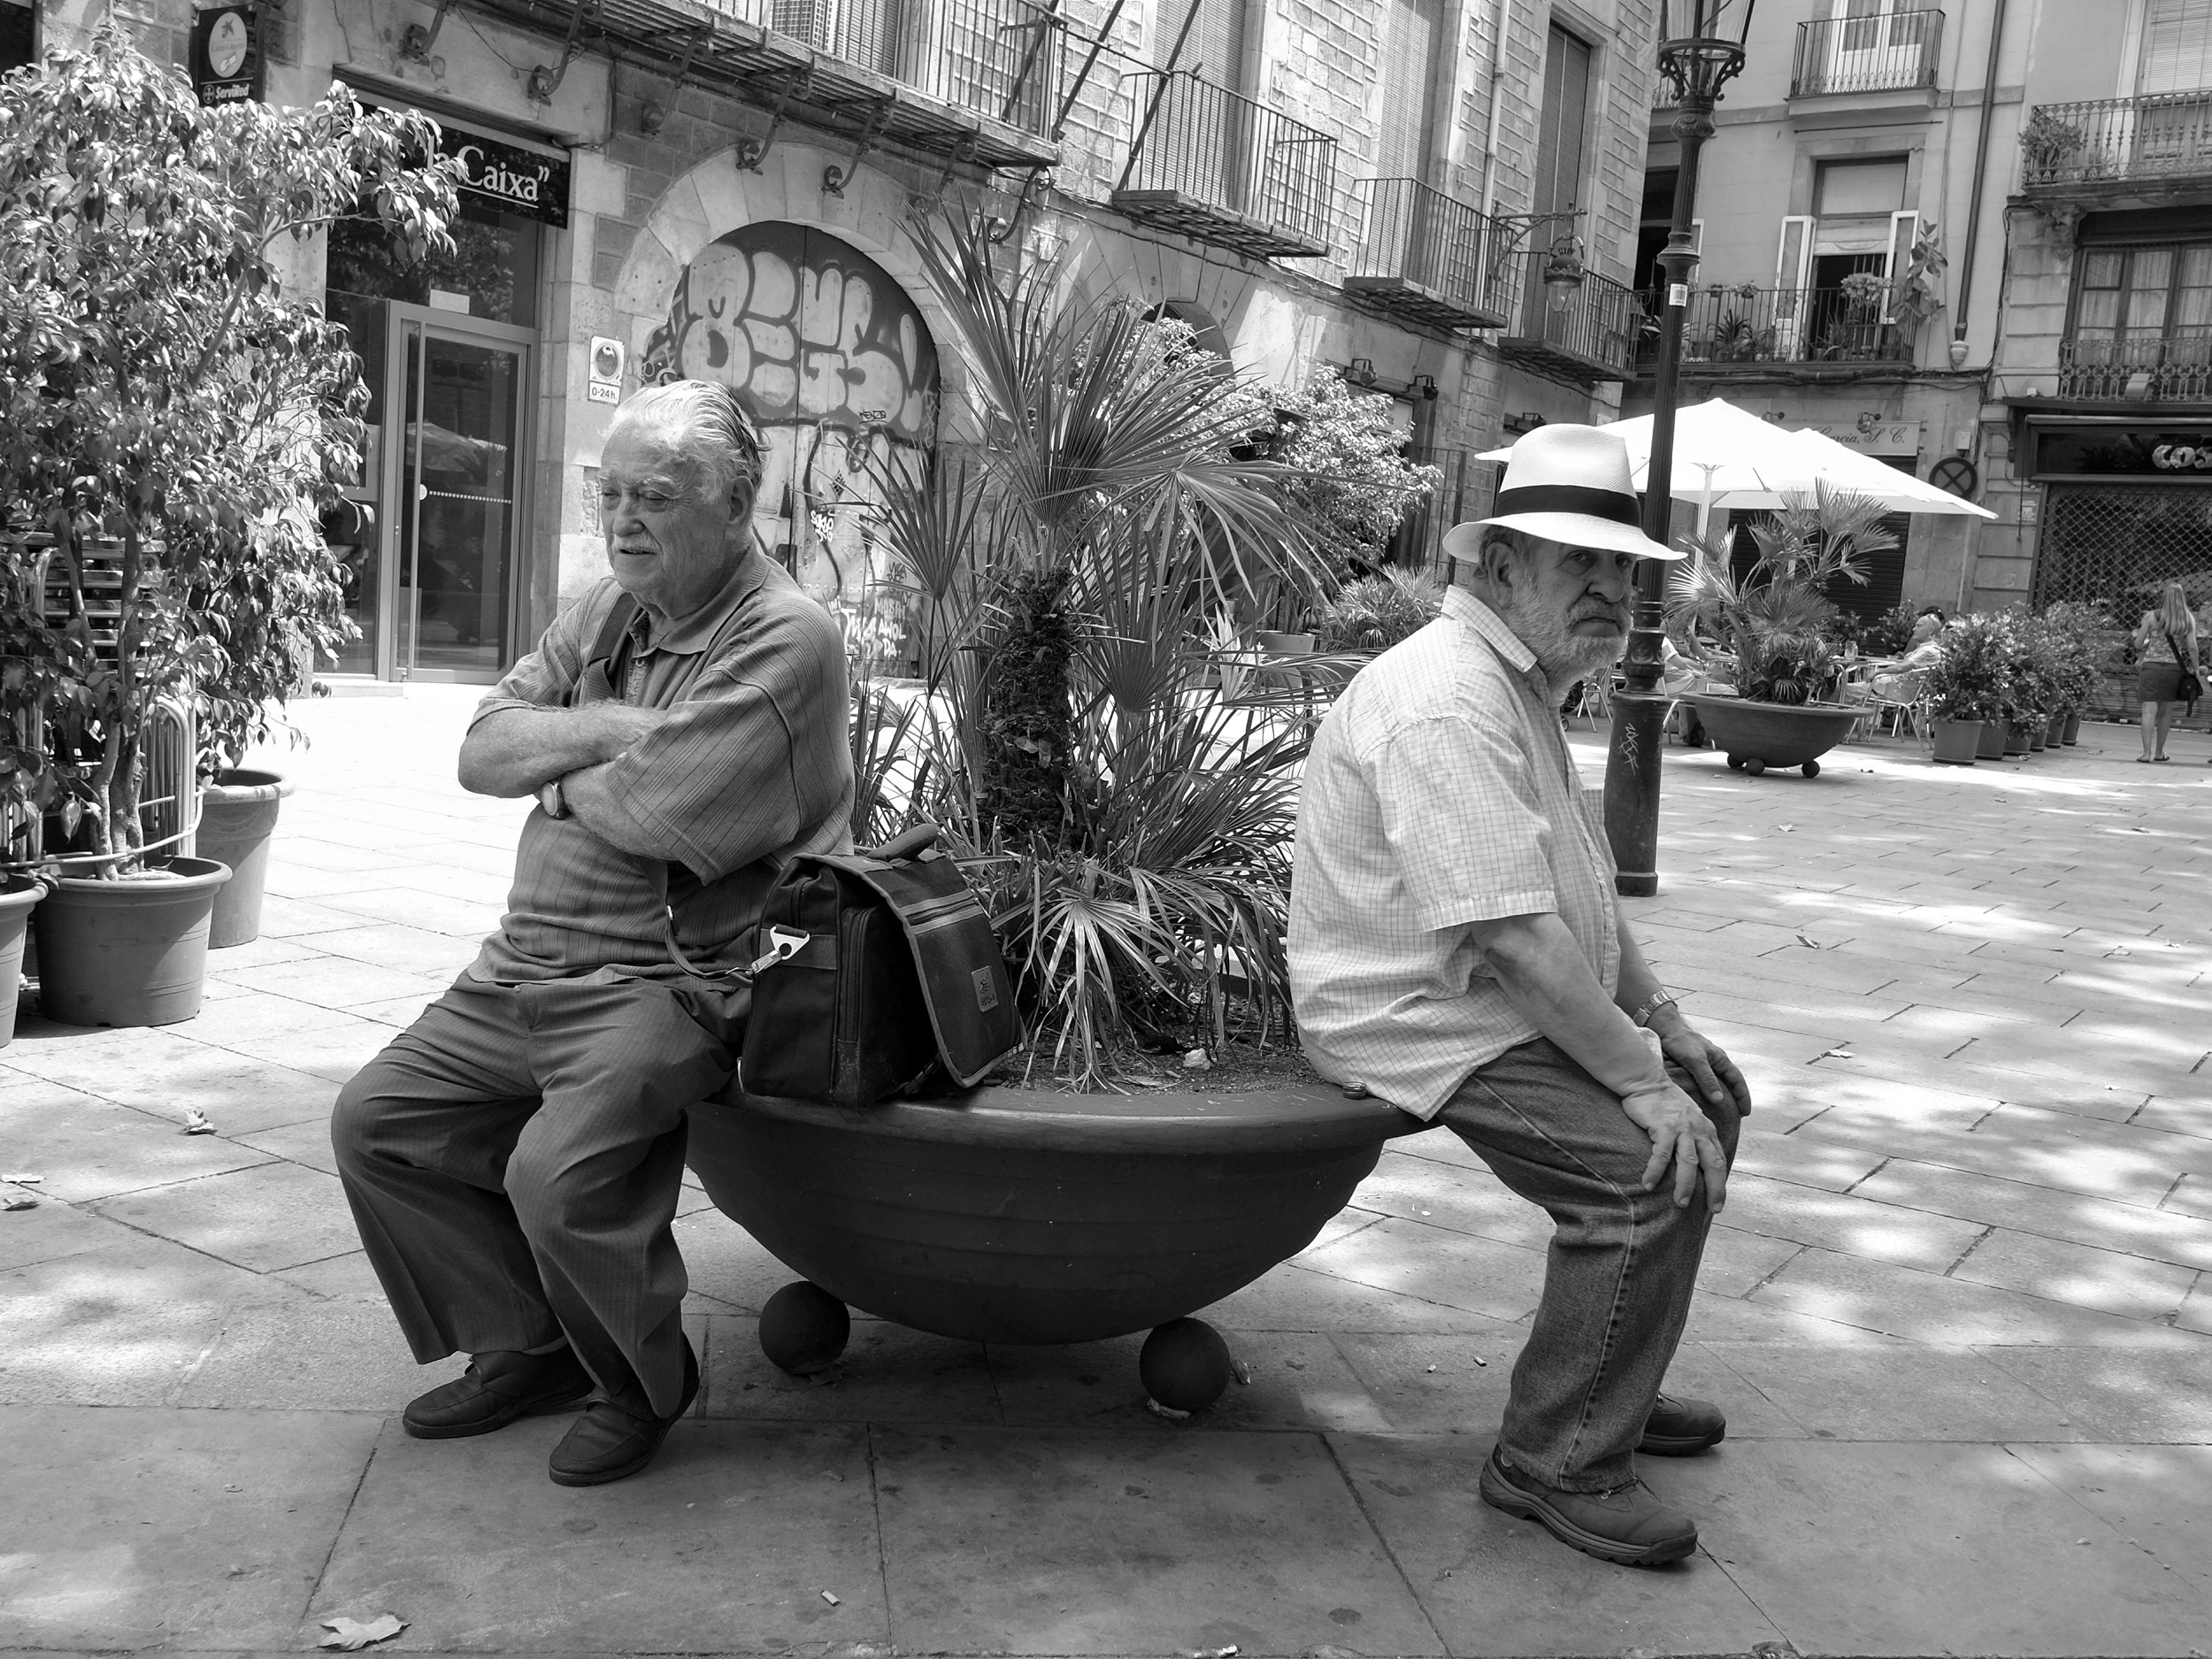 Old men relaxing in Barcelona - Fuji X-Pro1